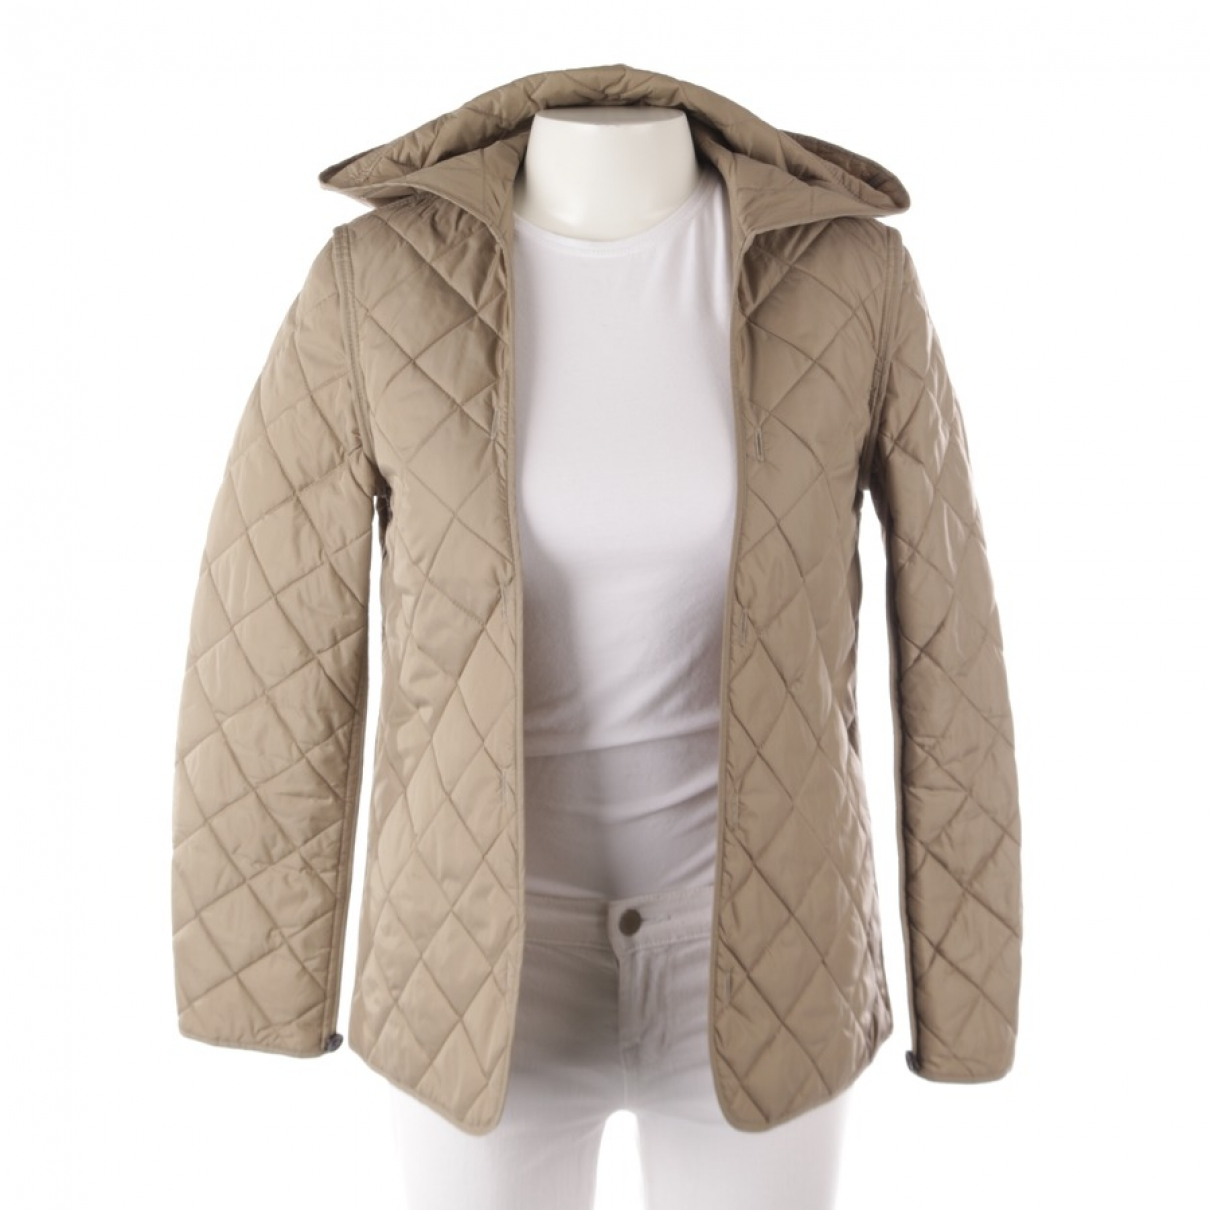 Burberry \N Jacke in  Beige Synthetik